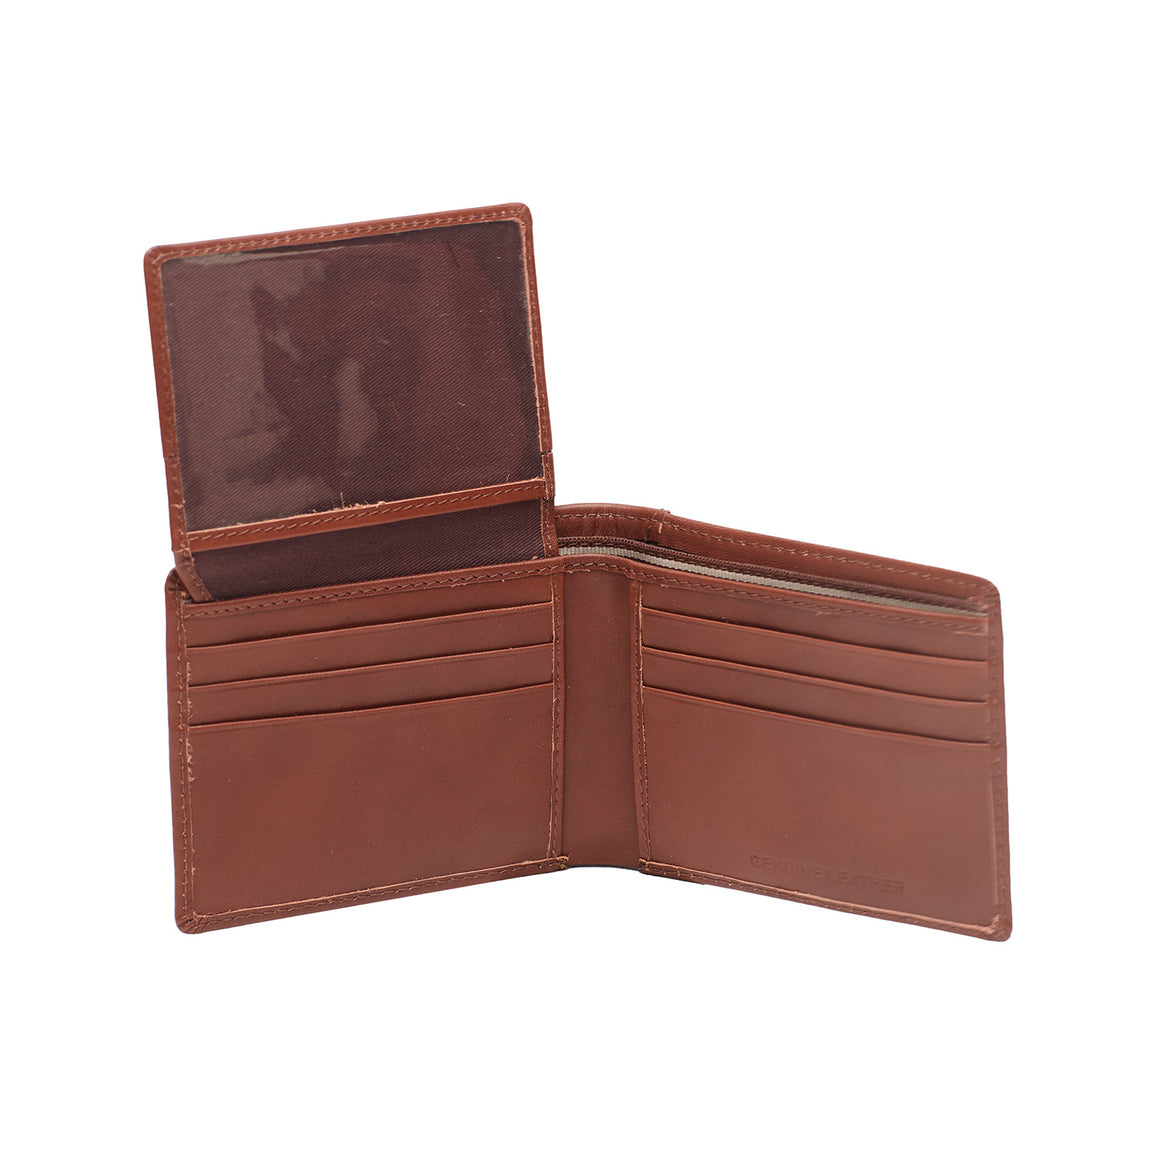 WT 0028 - TOHL ZONA MEN'S WALLET - VINTAGE TAN